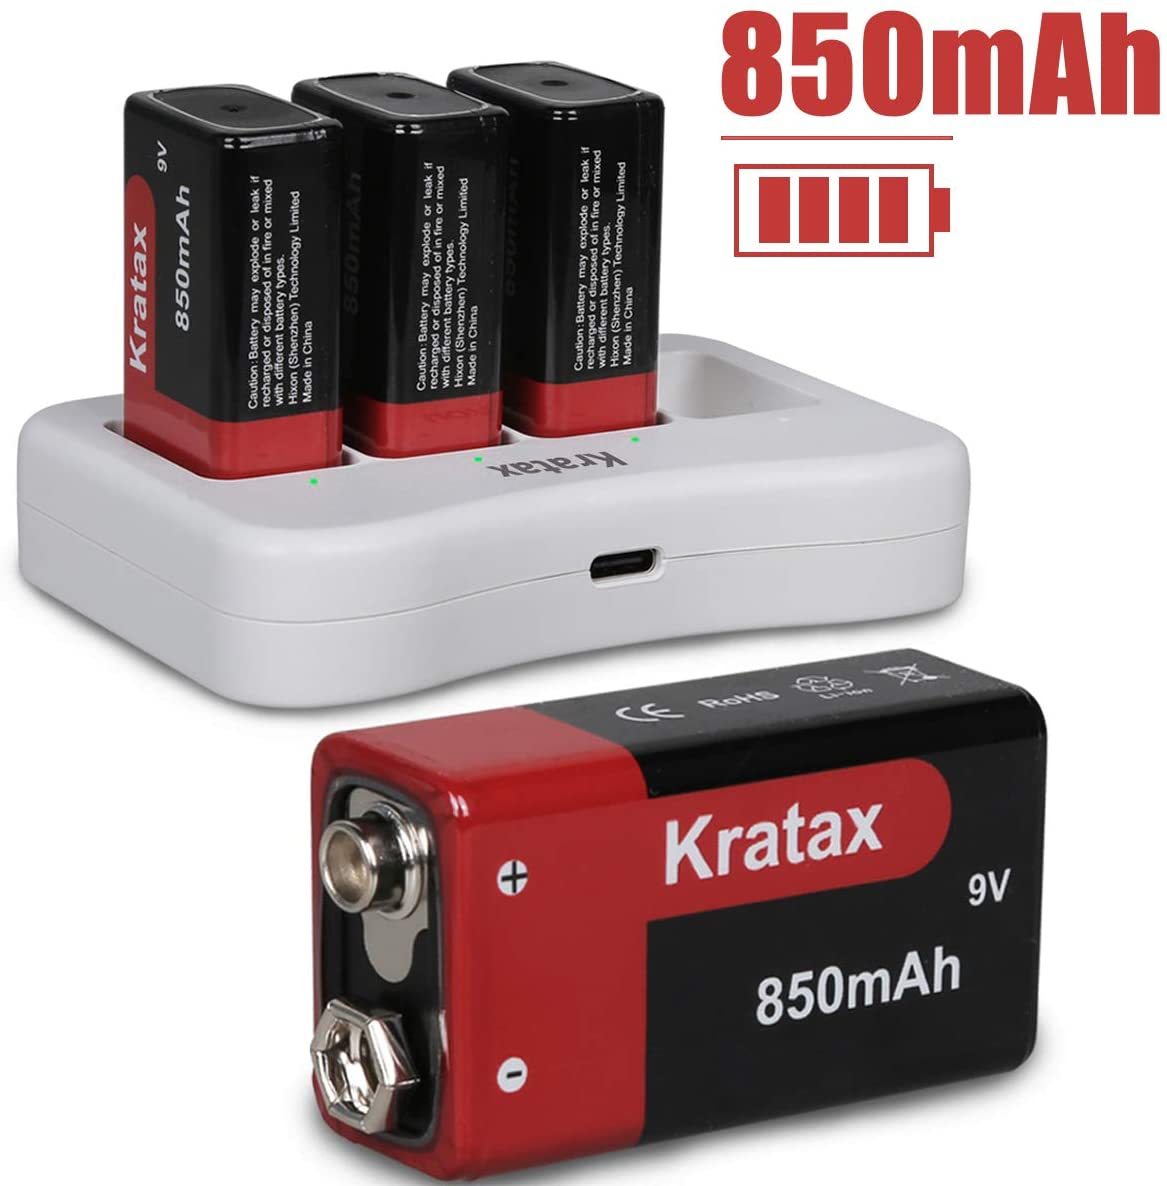 9v Battery and Charger Kratax 4-Packs 850mAh Li-ion Rechargeable Batteries with 4 Slot Charger, for Smoke Alarms, Guitar, Cameras, Walkie Talkies, Toy Remotes, Microphones and Other Devices